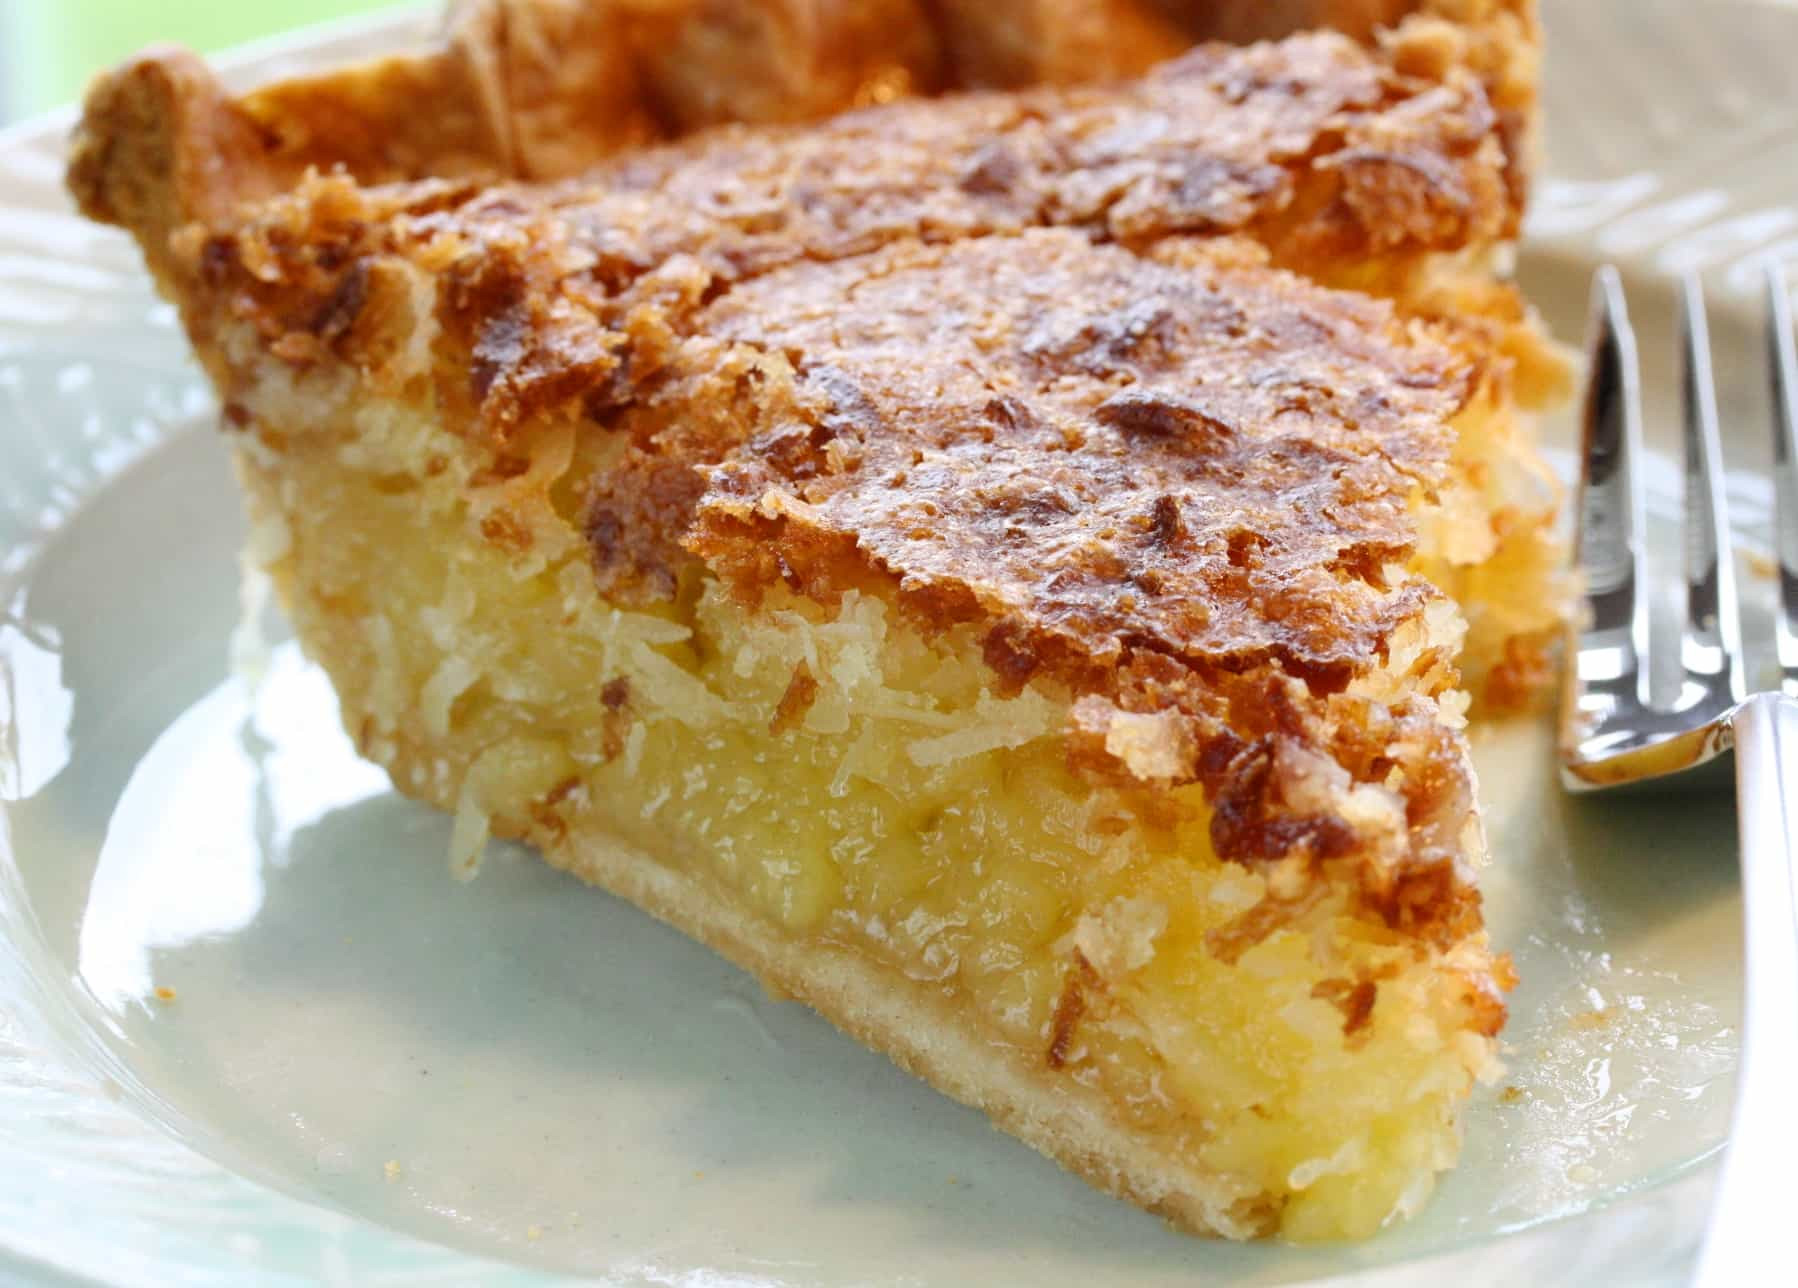 Coconut Pie Recipes  Pie No 18 French Coconut Pie Saving Room for Dessert